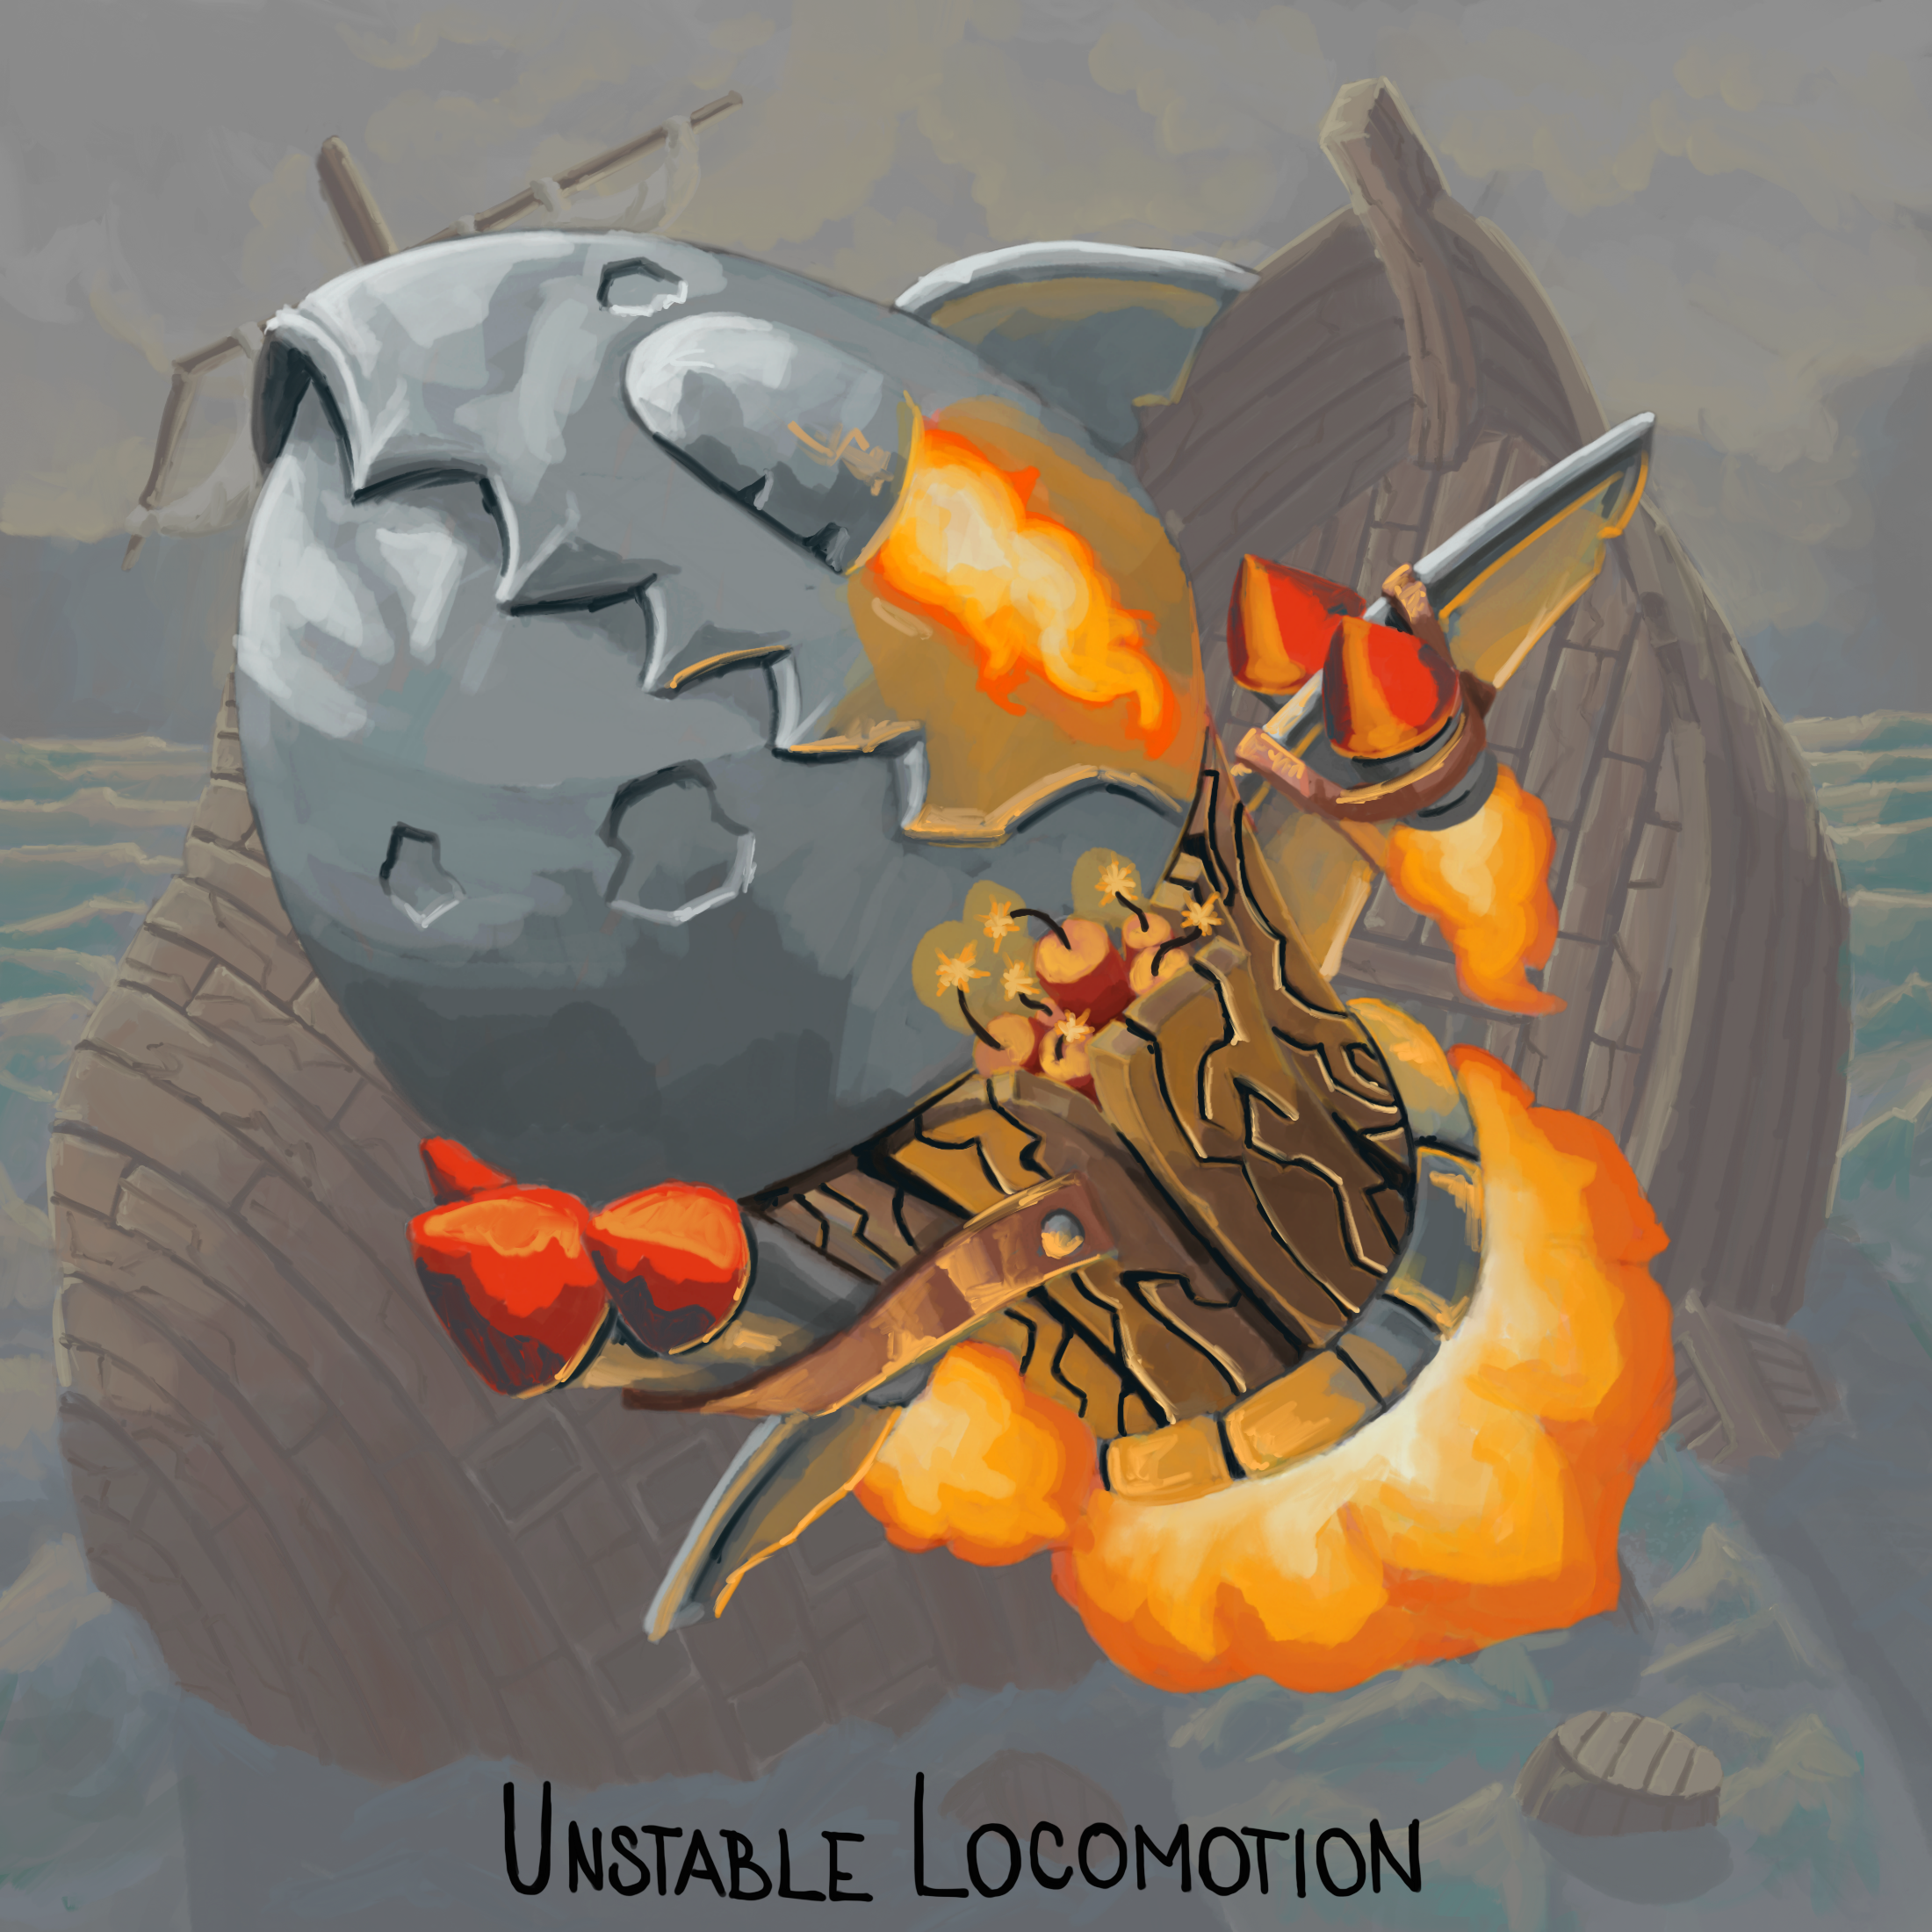 Unstable Locomotion In 2020 Dungeons And Dragons Digital Illustration Worldbuilding Just as the powercap is hitting 970 in next season, it could be there is another +2 on each stats possible etc. pinterest